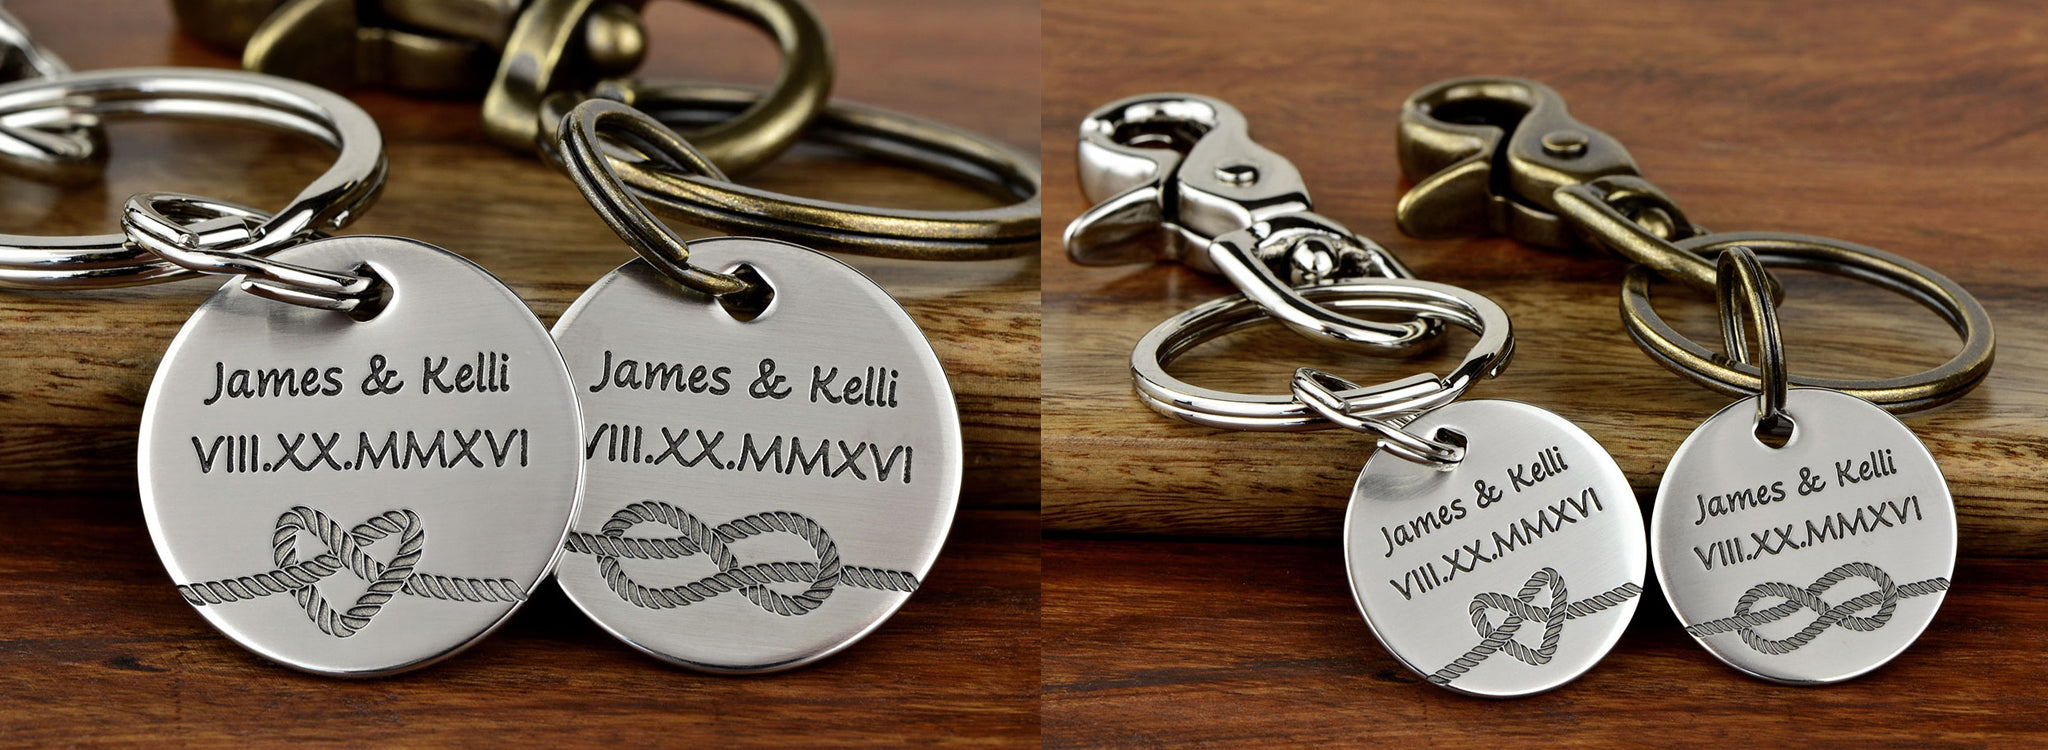 Tied the Knot Keychain